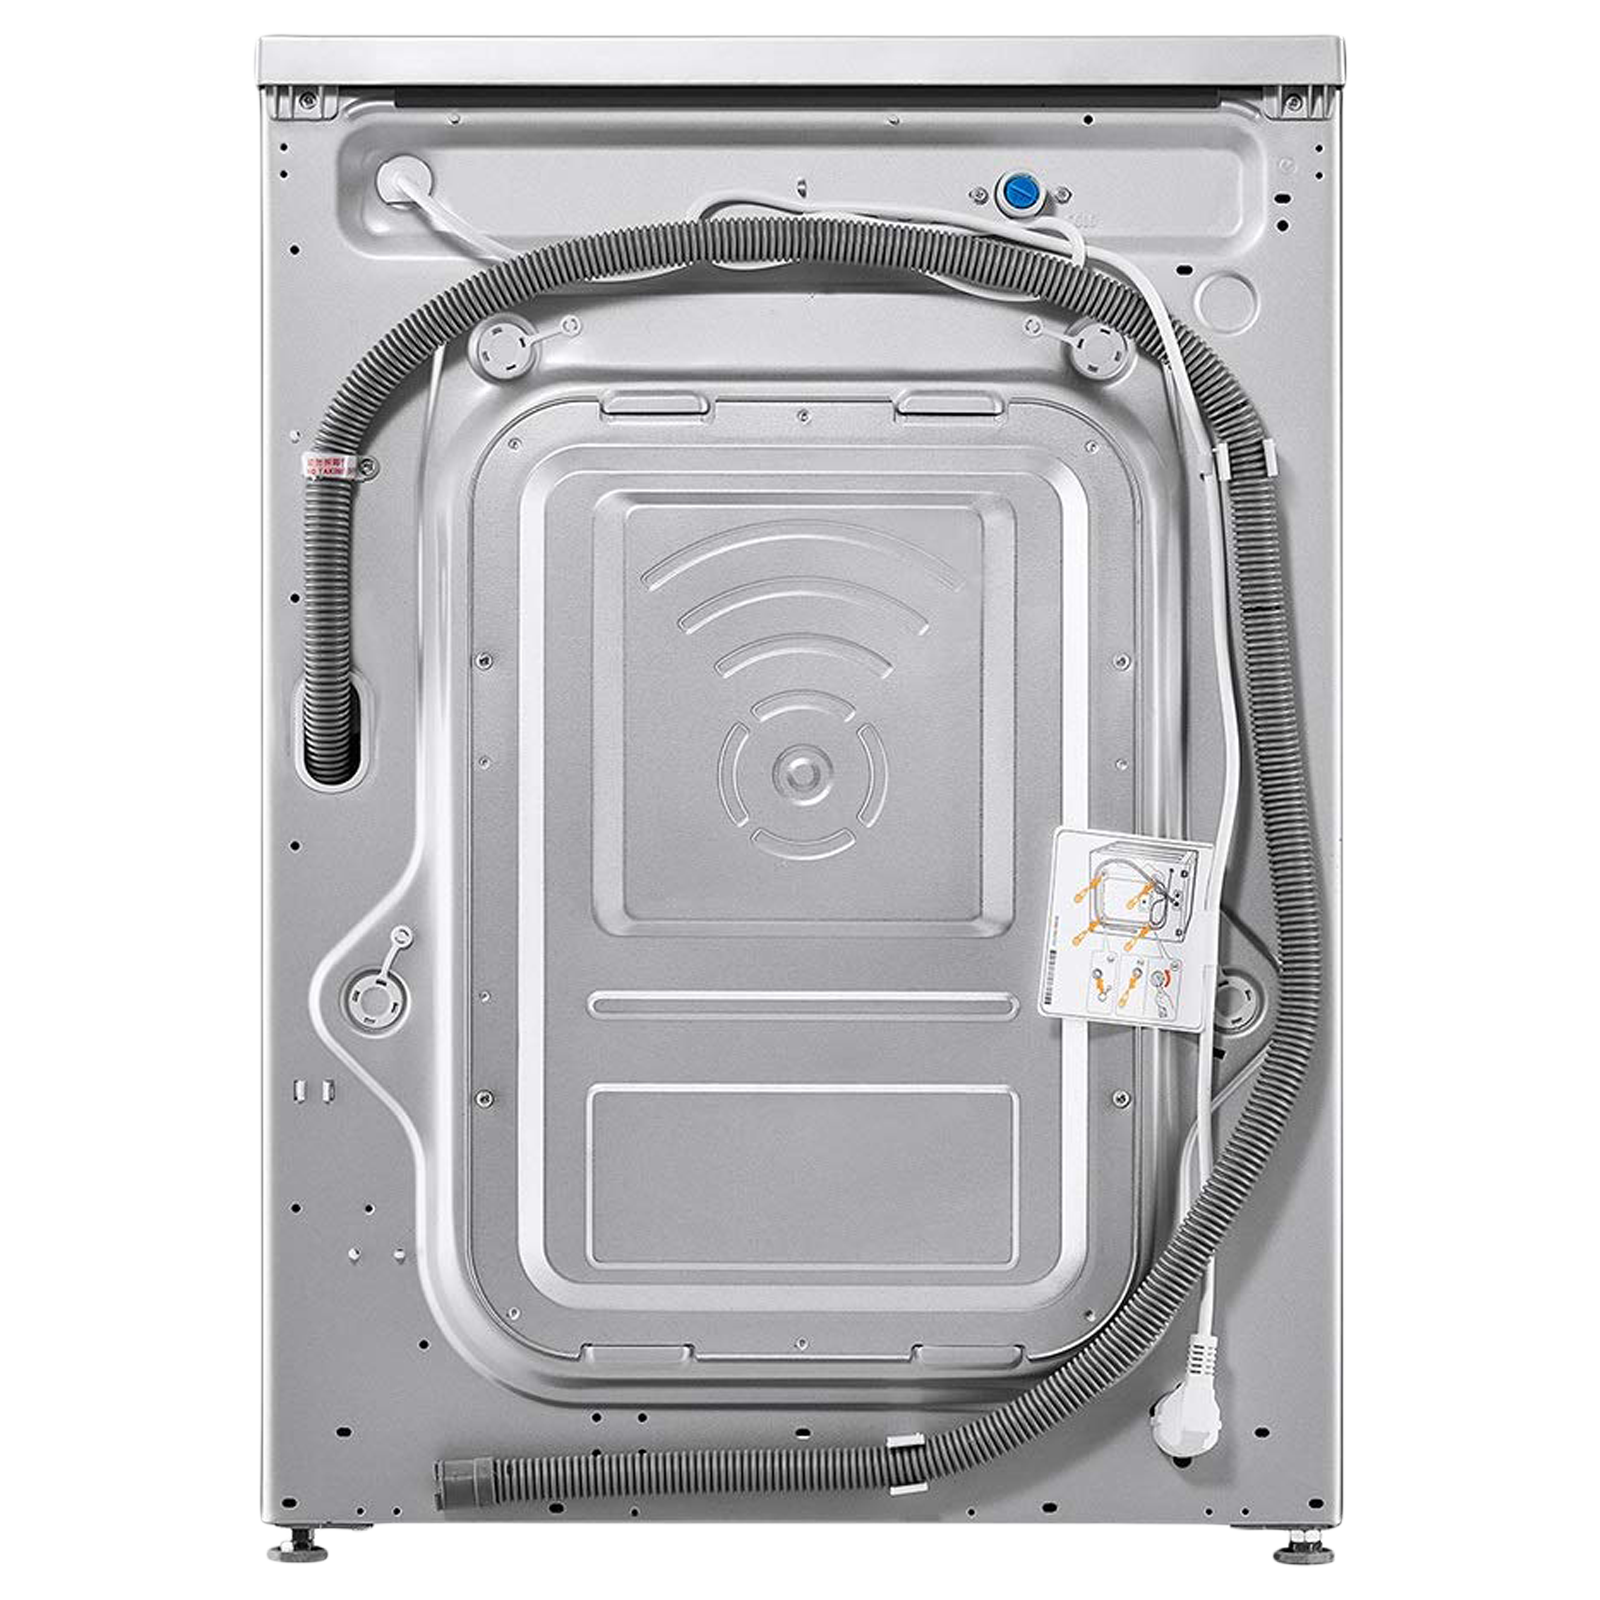 LG 7 kg 5 Star Fully Automatic Front Load Washing Machine (Smart Diagnosis, FHM1207ZDL.ALSQEIL, Luxury Silver) 7